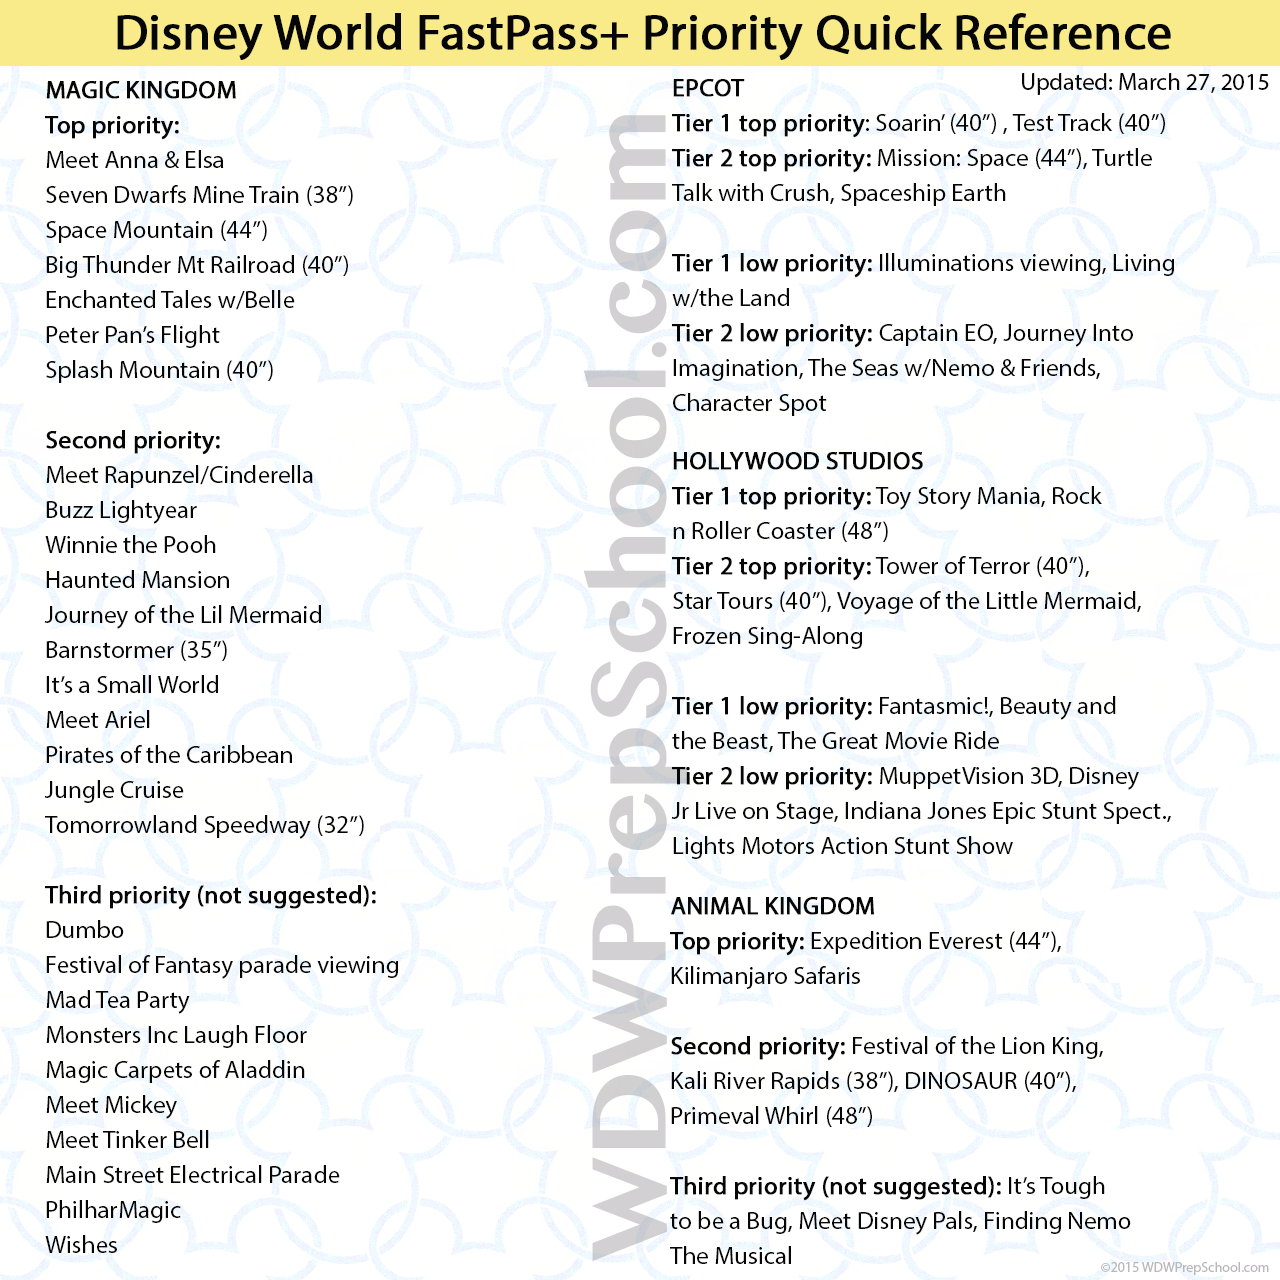 Disney World touring plans and FastPass suggestions | Prep school ...